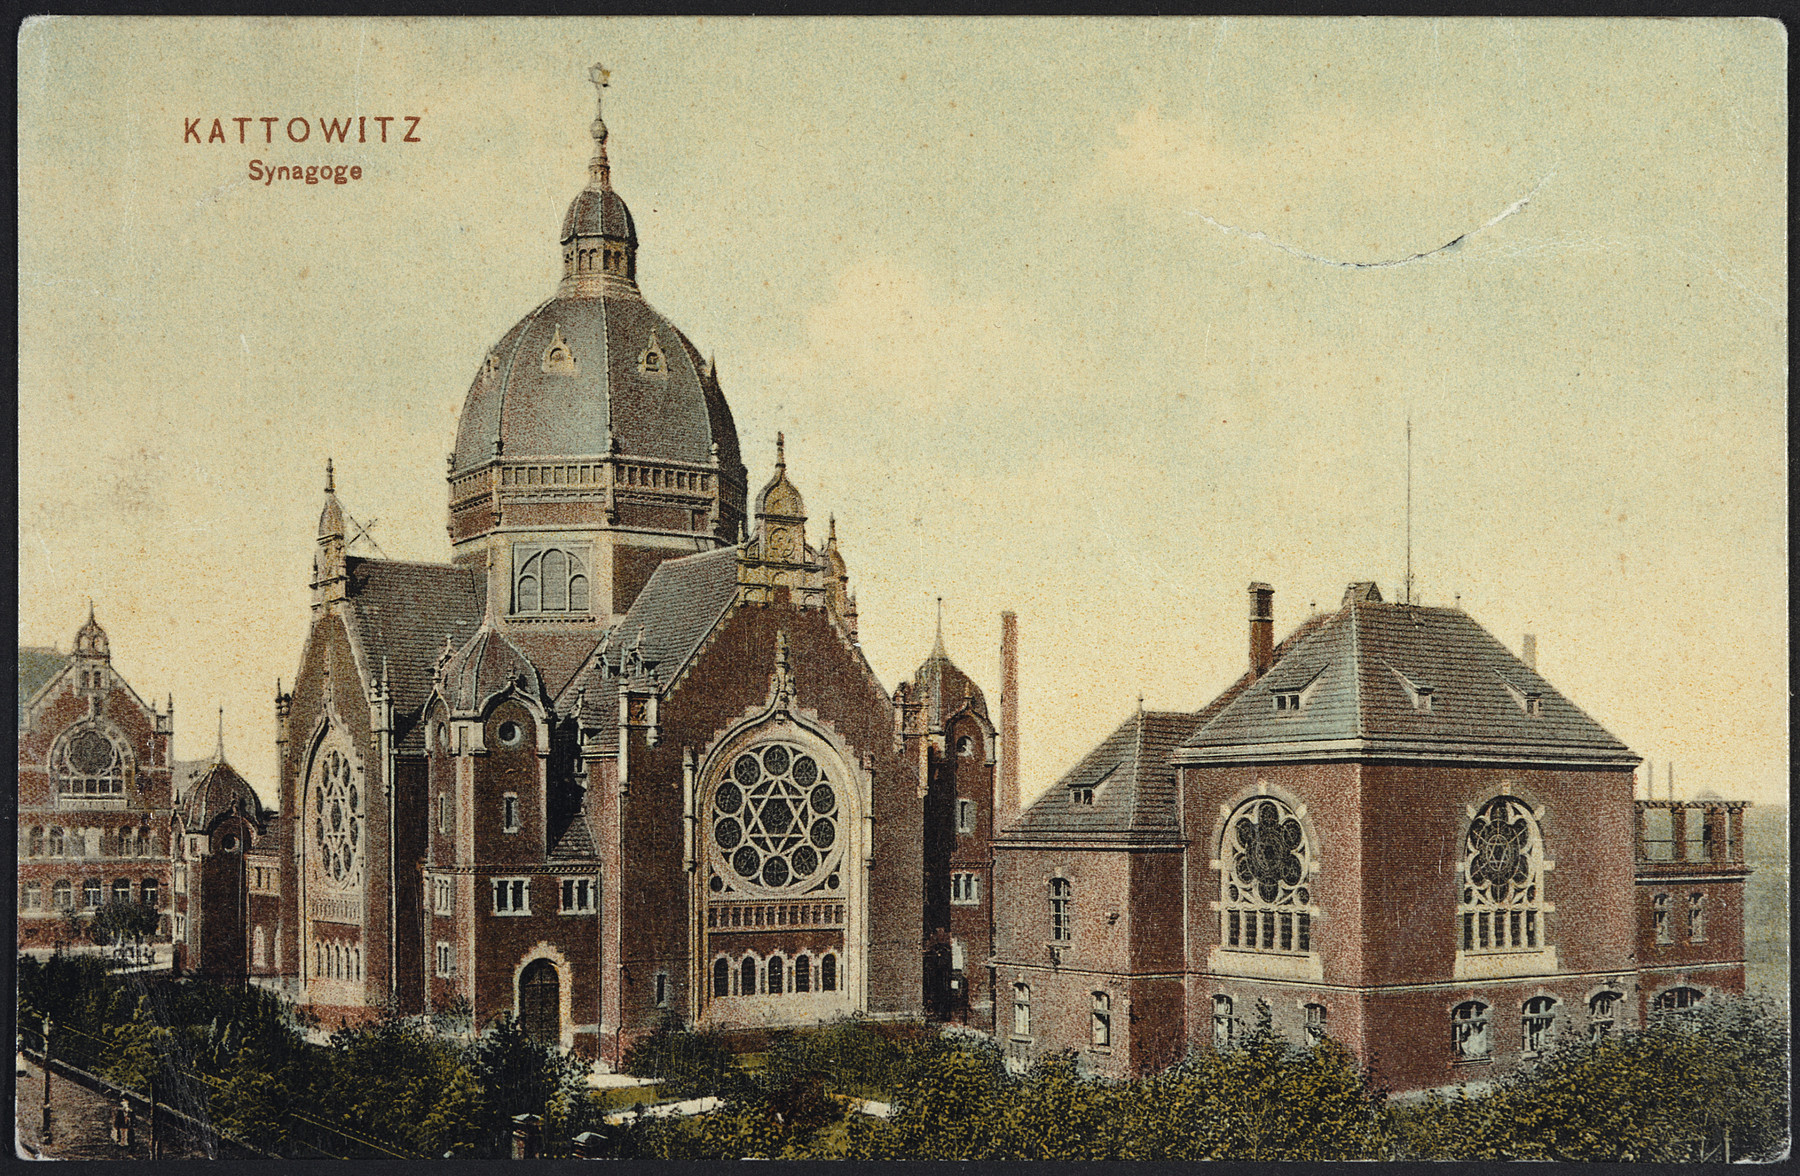 Picture postcard showing an exterior view of the synagogue in Katowice, Poland.